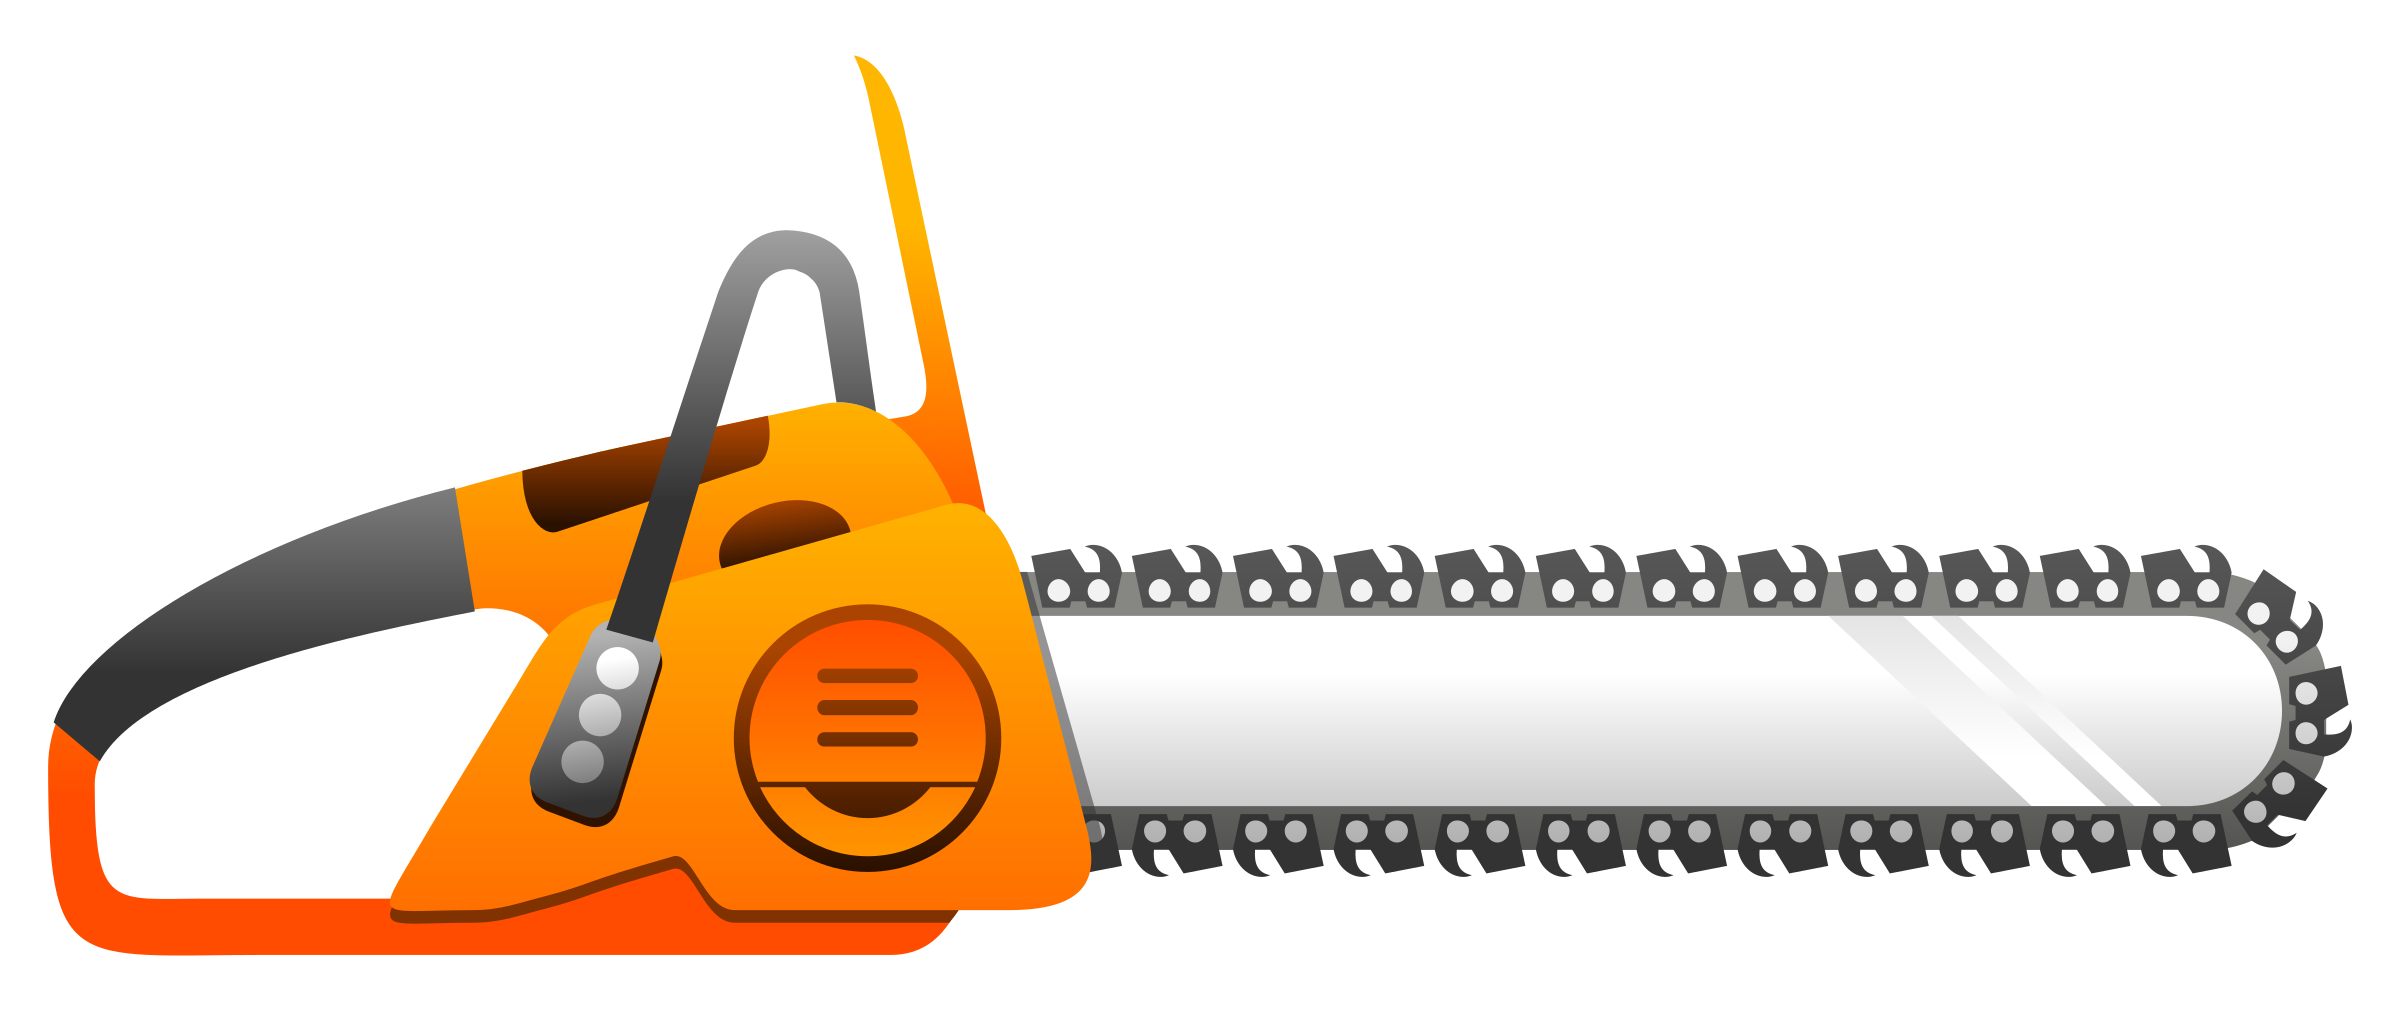 Chain saw blade png. Chainsaw clipart simple pencil